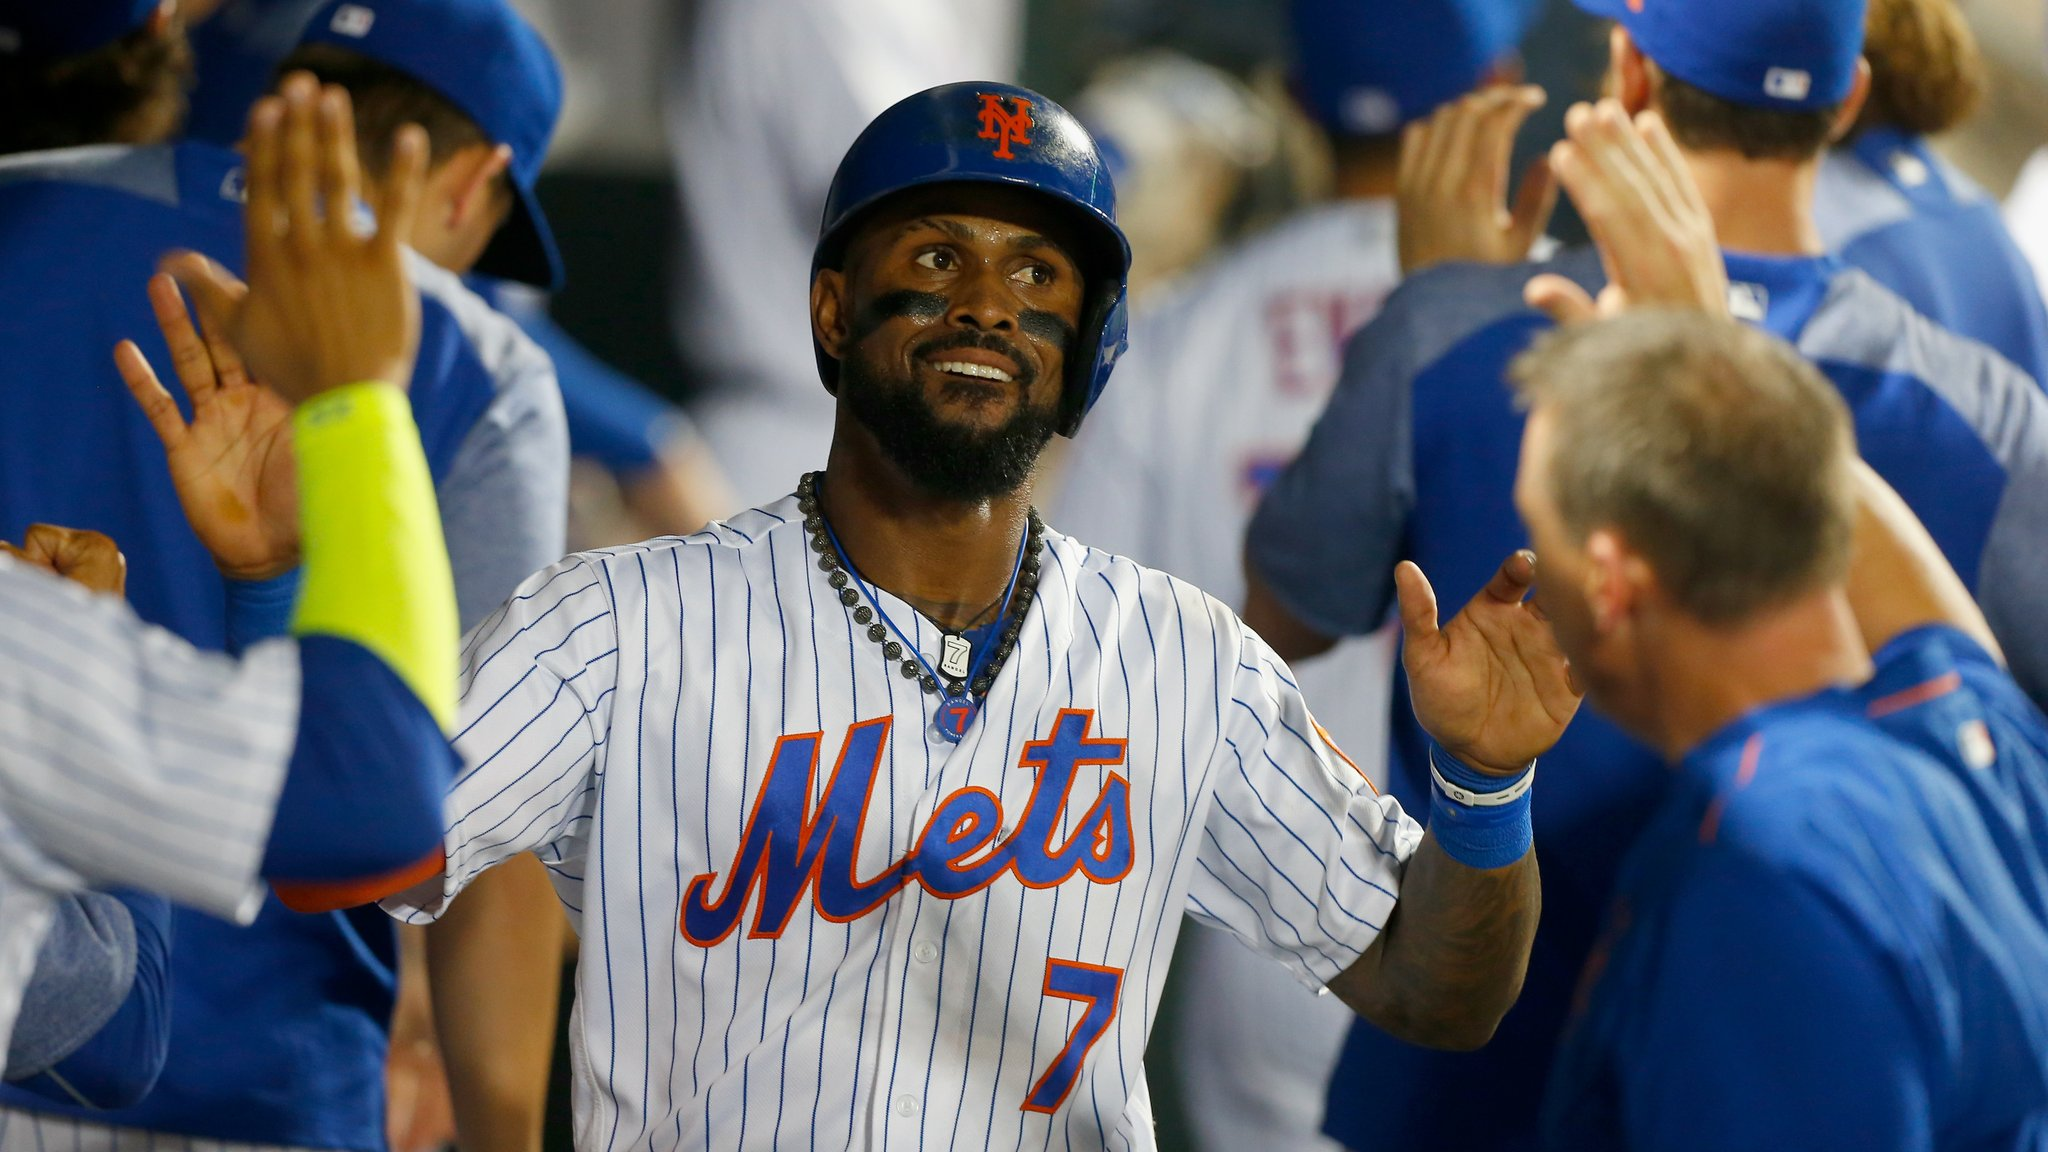 Jose Reyes sure hopes he didn't just play his last home game at Citi Field: https://t.co/7rh1uWCV13 https://t.co/XnQL4OO6H8